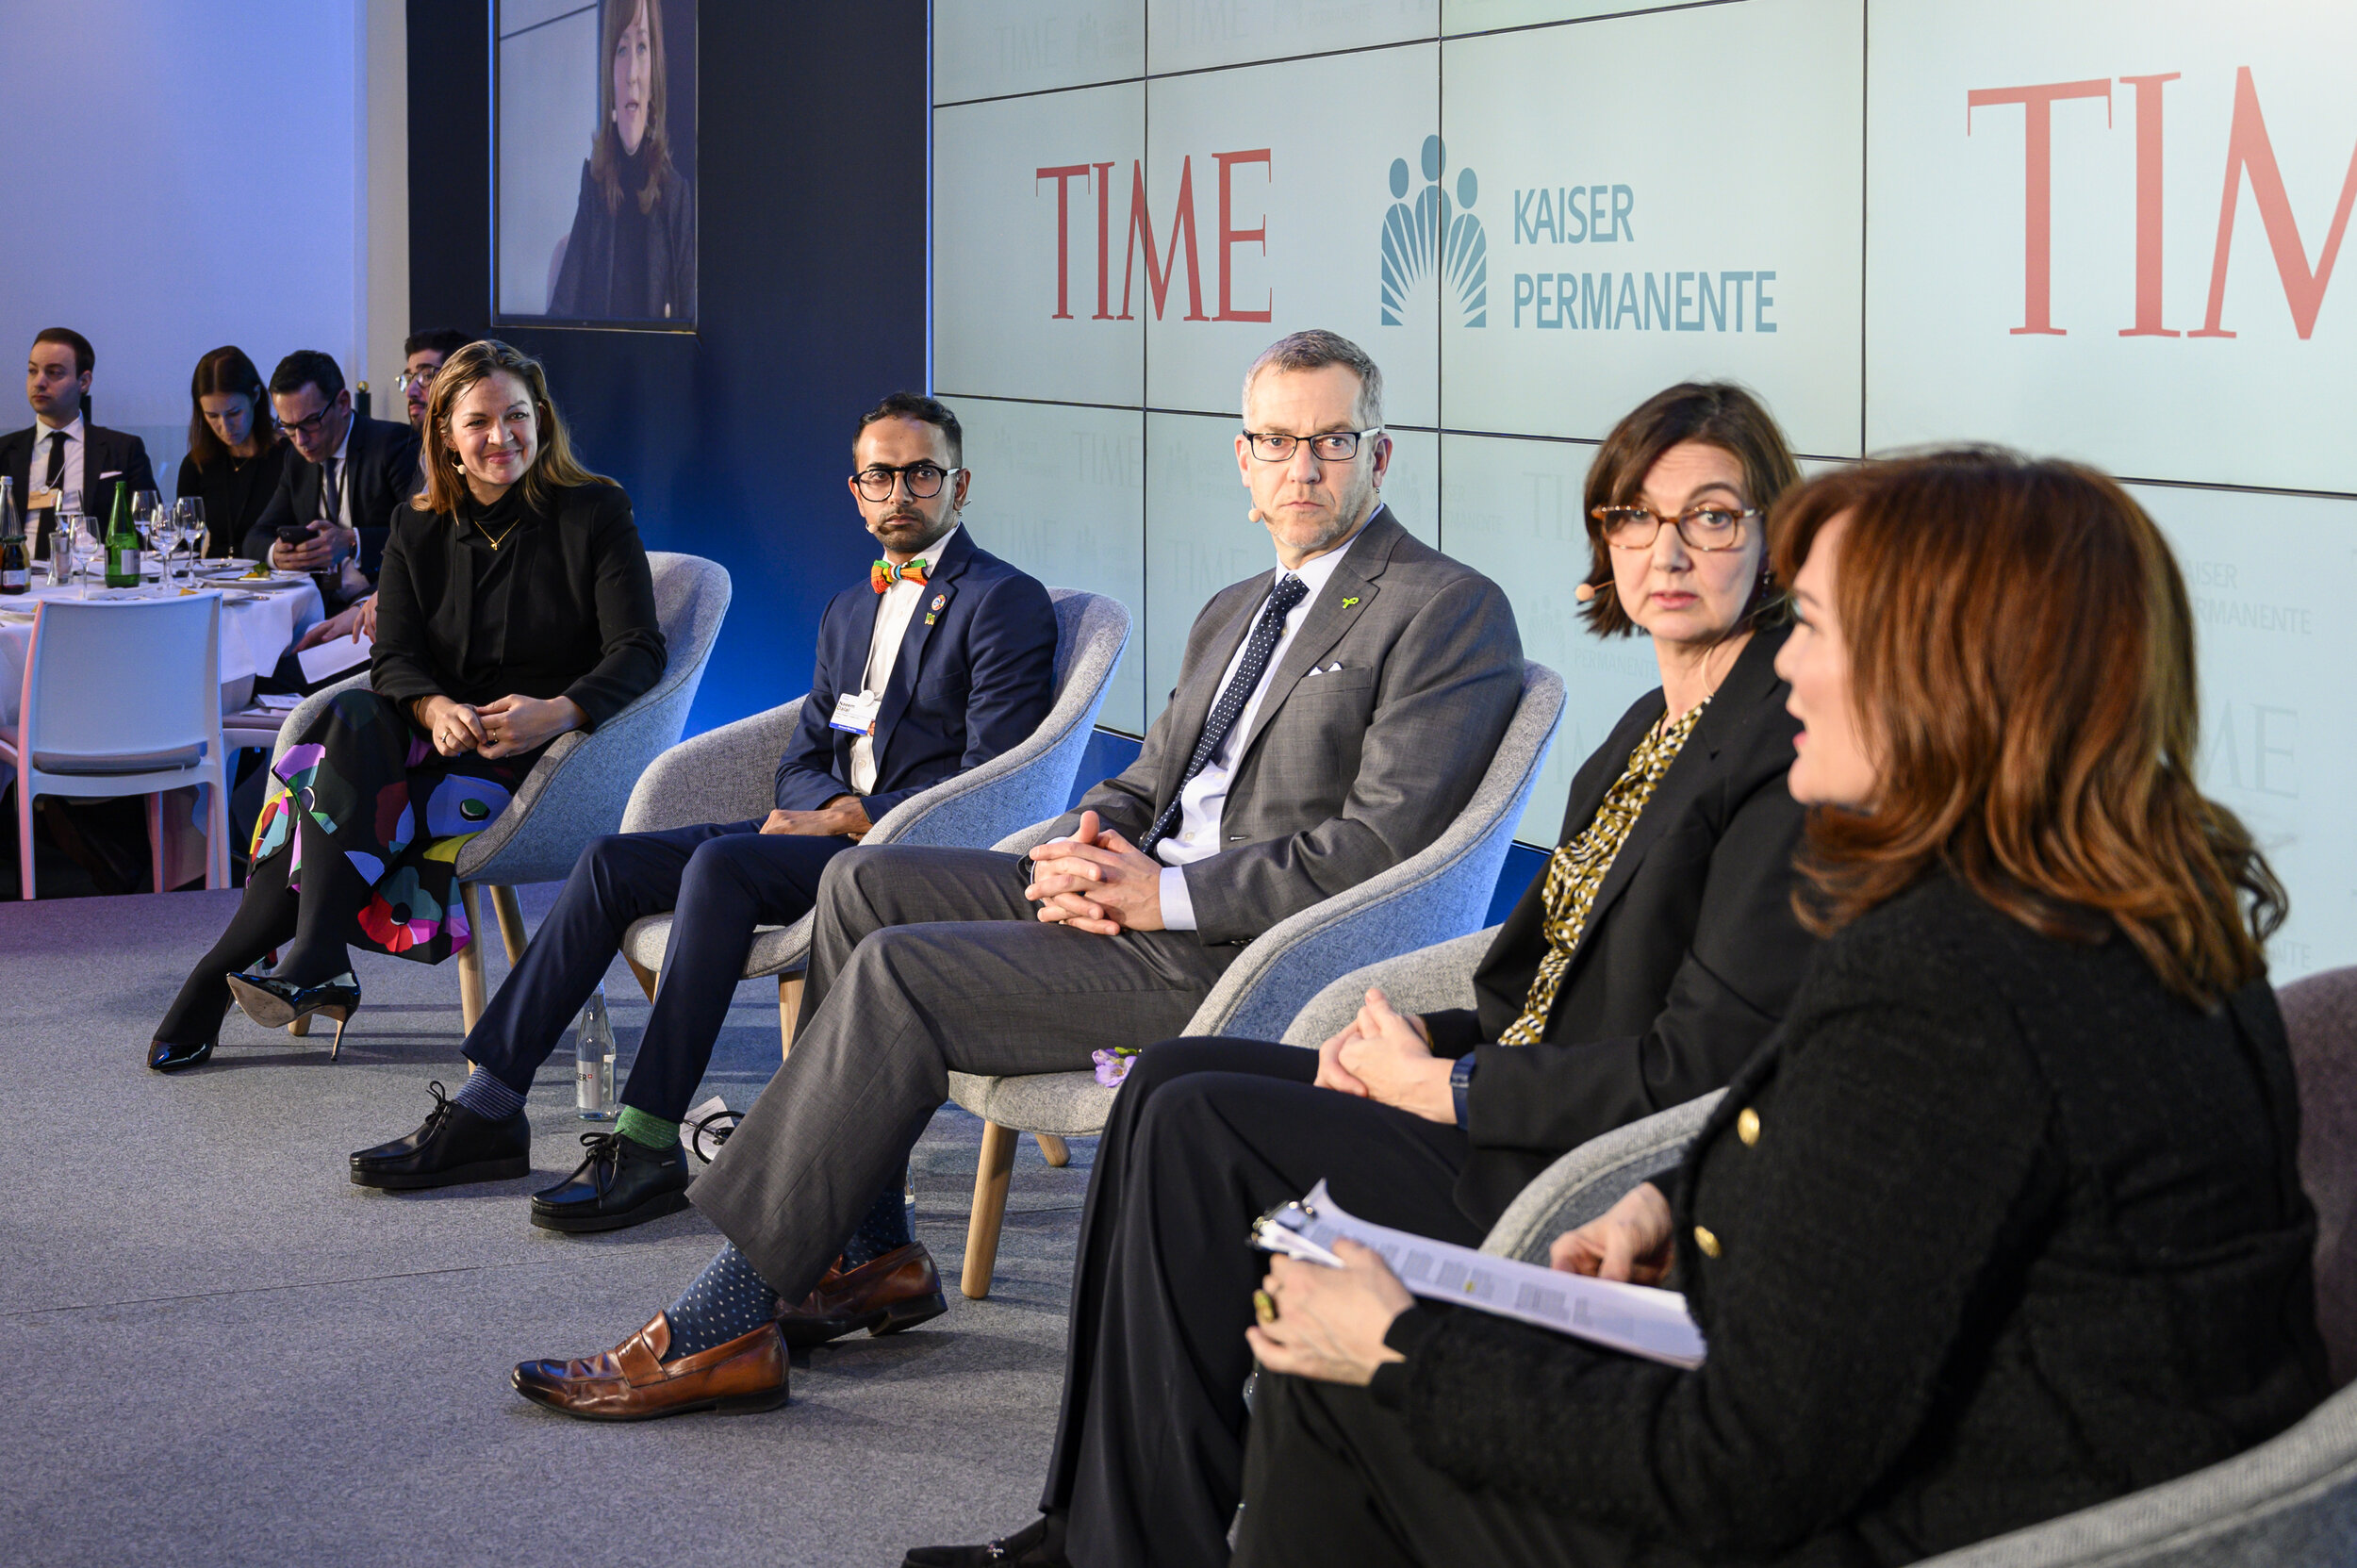 TIME and Kaiser Permanente's panel on mental health at Davos 2020 featuring Naeem Dalal and Miranda Wolpert